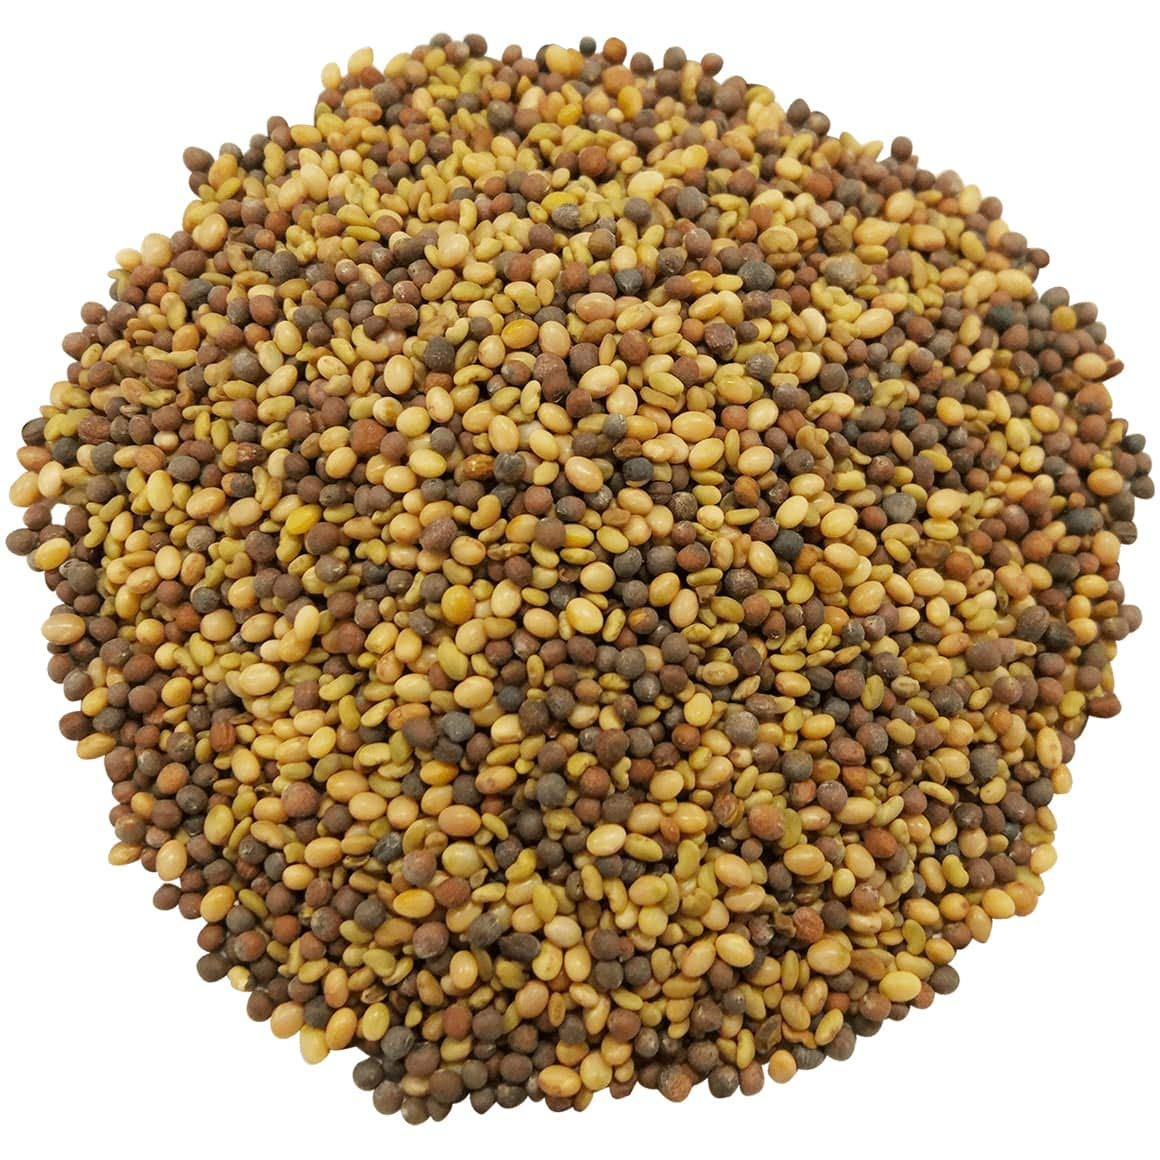 Antioxidant Mix of Sprouting Seeds, 5 Pounds - Broccoli, Clover, Alfalfa, Kosher, Raw, Vegan by Food to Live